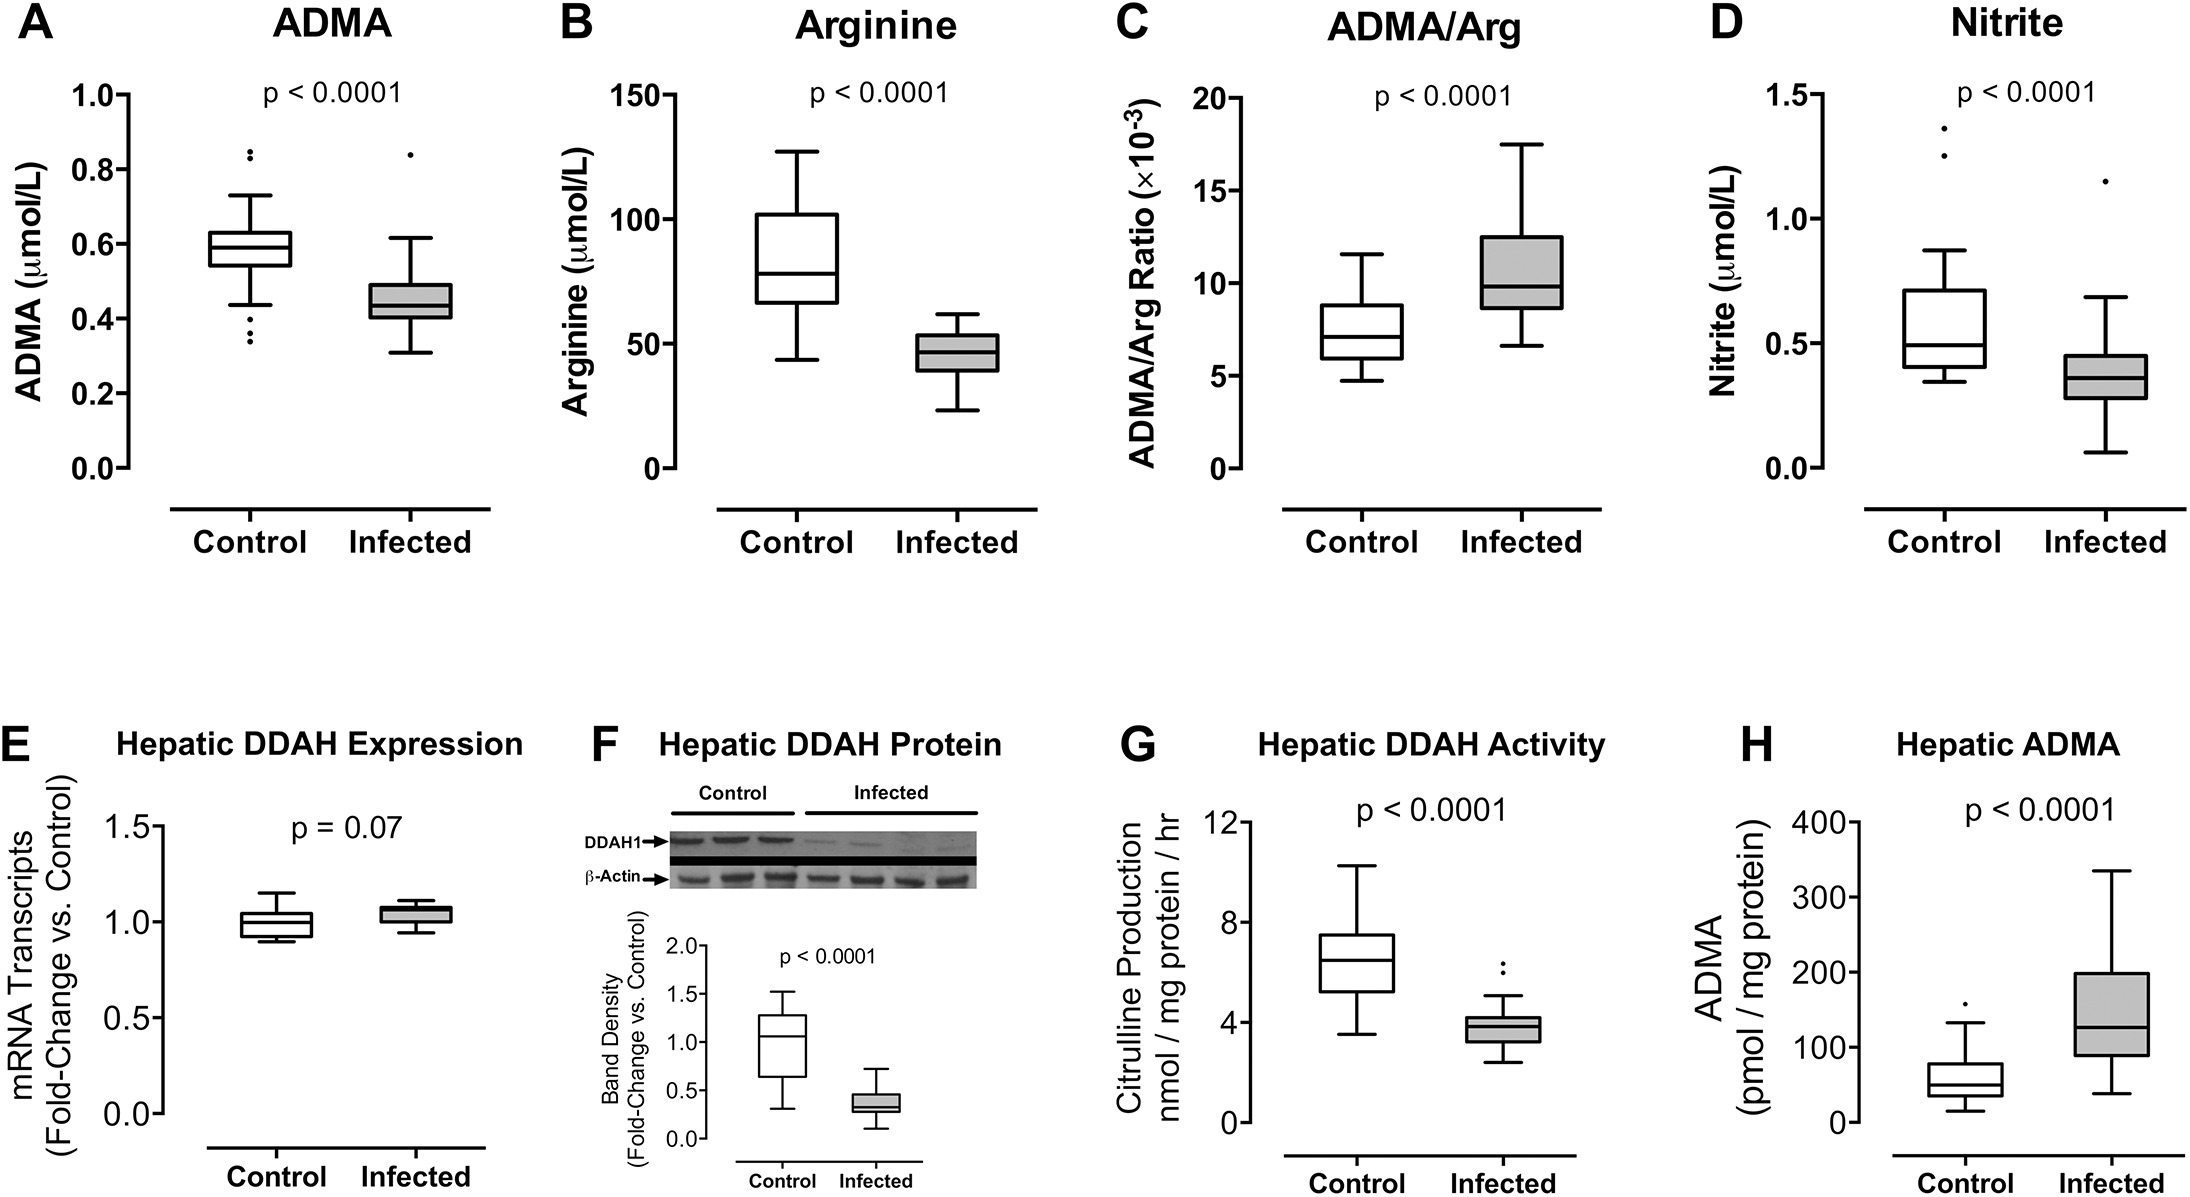 (A-D) <i>Plasmodium berghei</i> ANKA infection increases the plasma ratio of ADMA to arginine in mice.